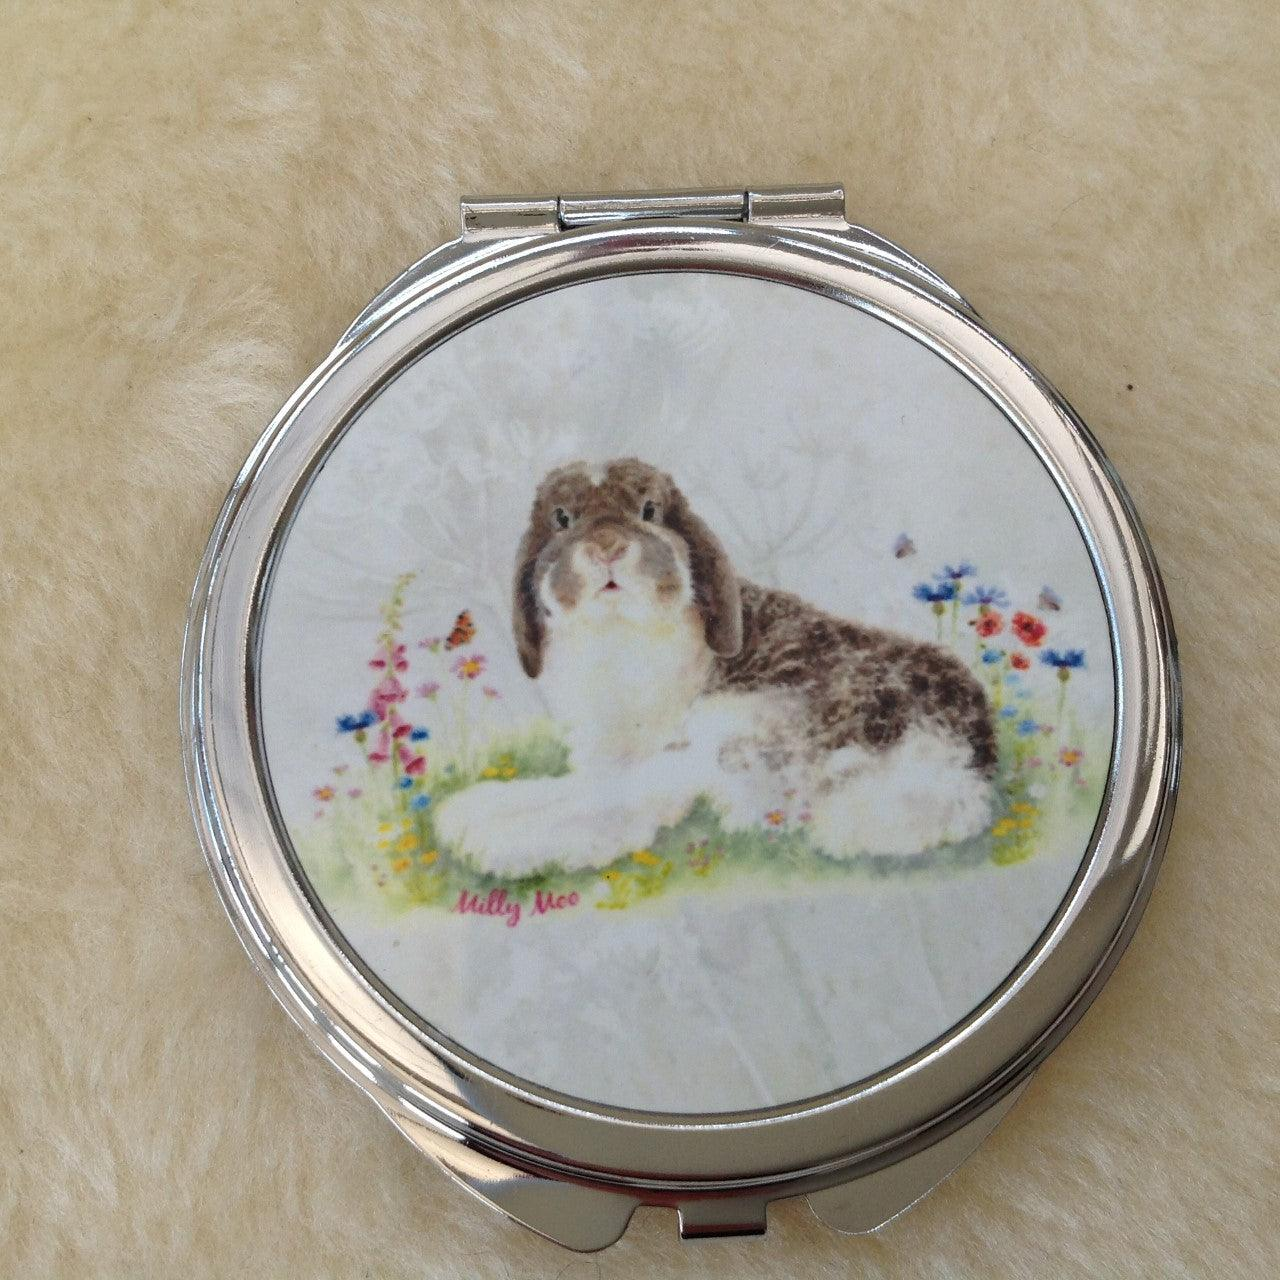 Milly Moo Bunny Rabbit Mirror Compact